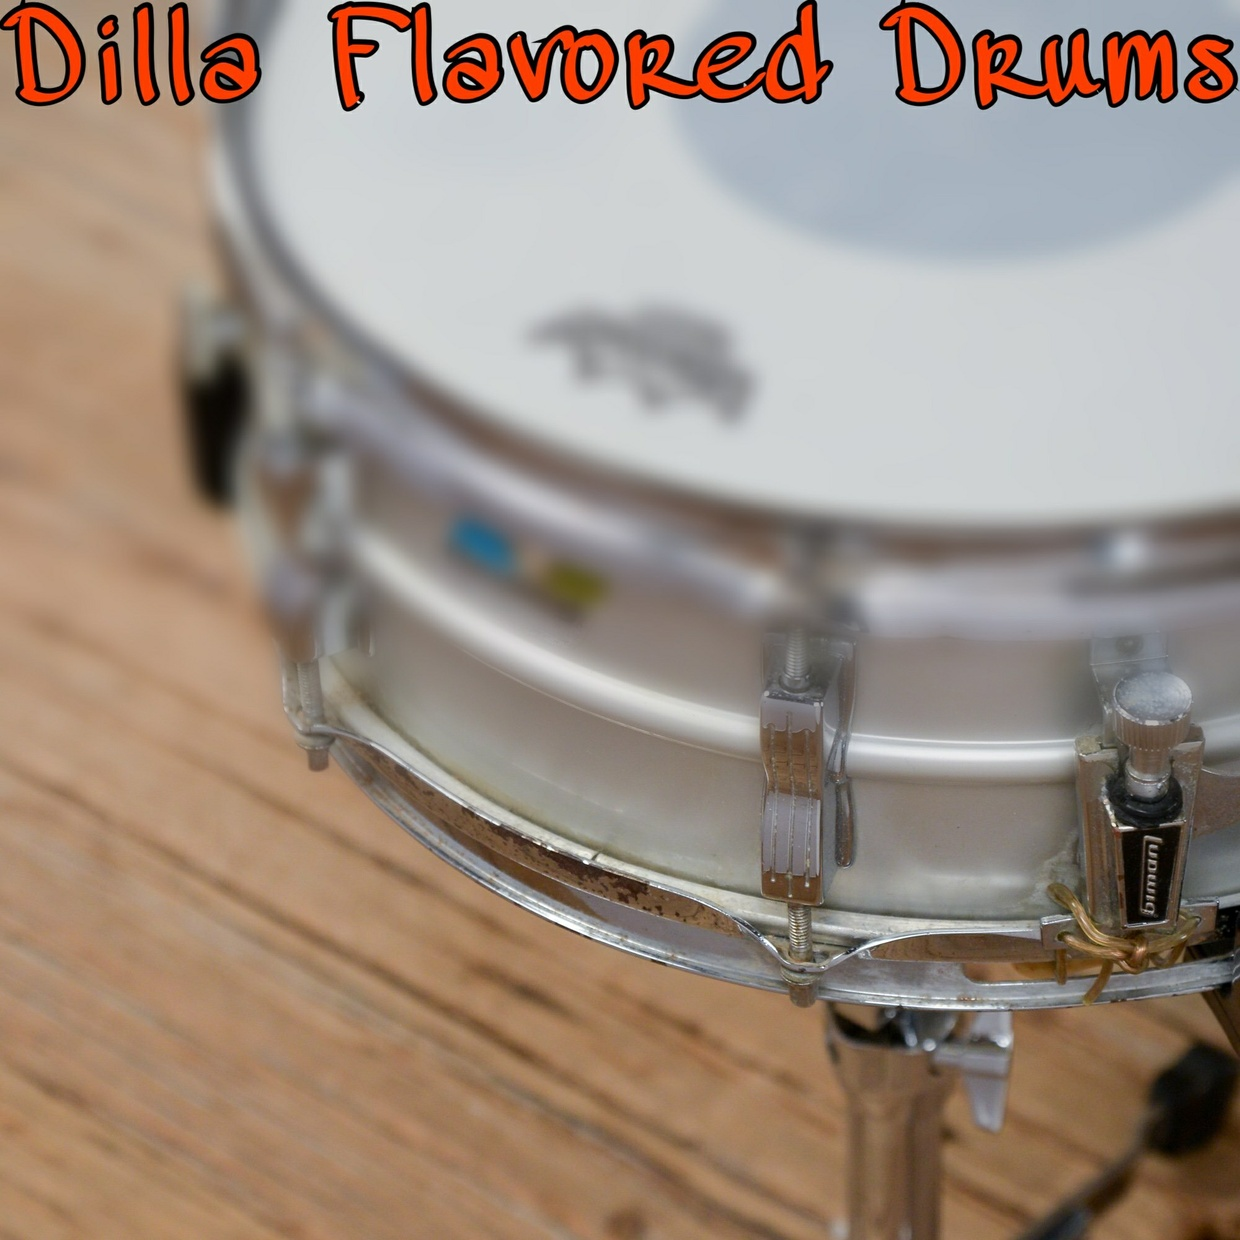 Dilla Flavored Drums